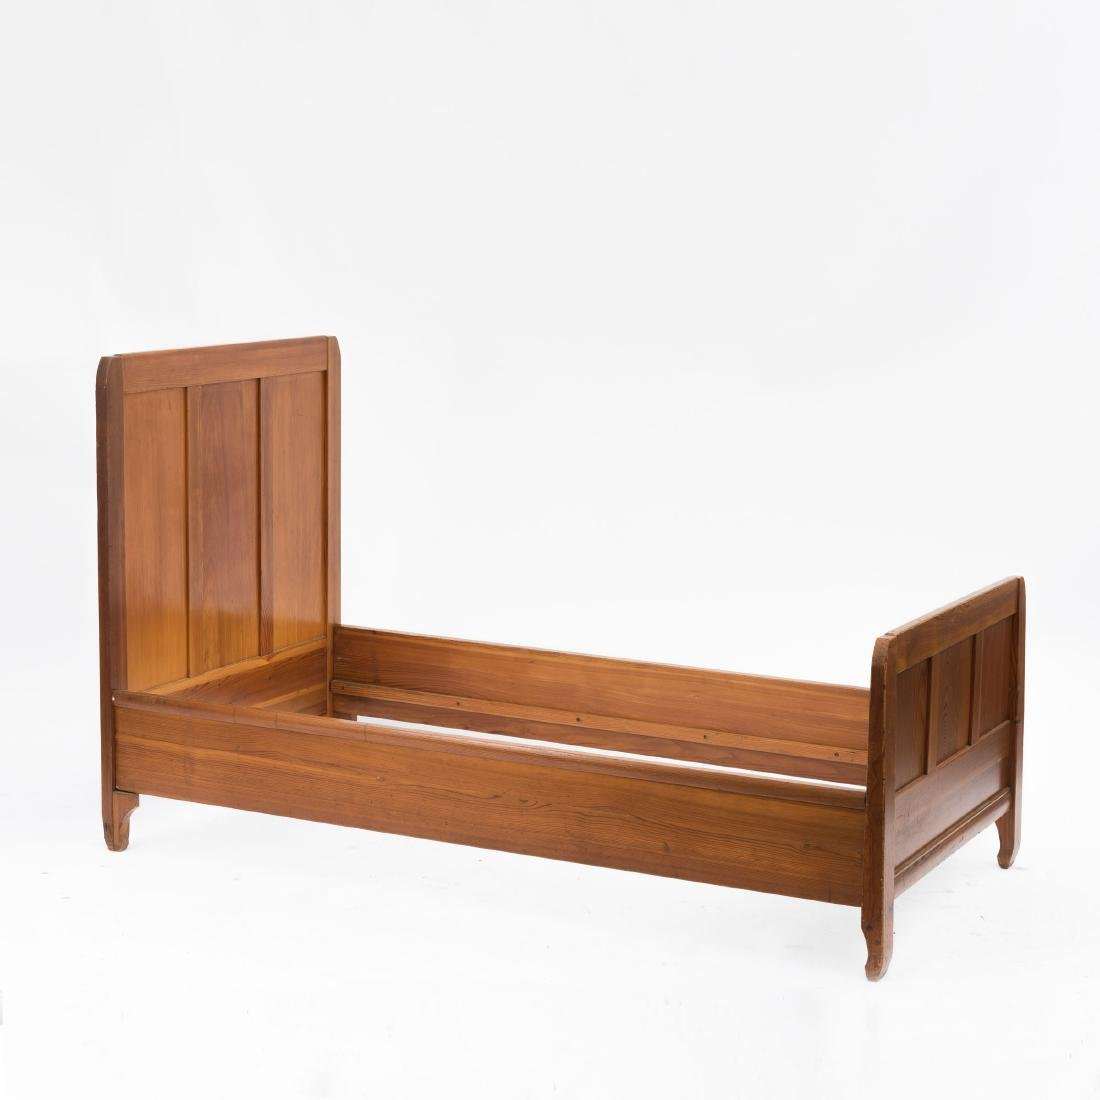 Bed, 1905 - 2